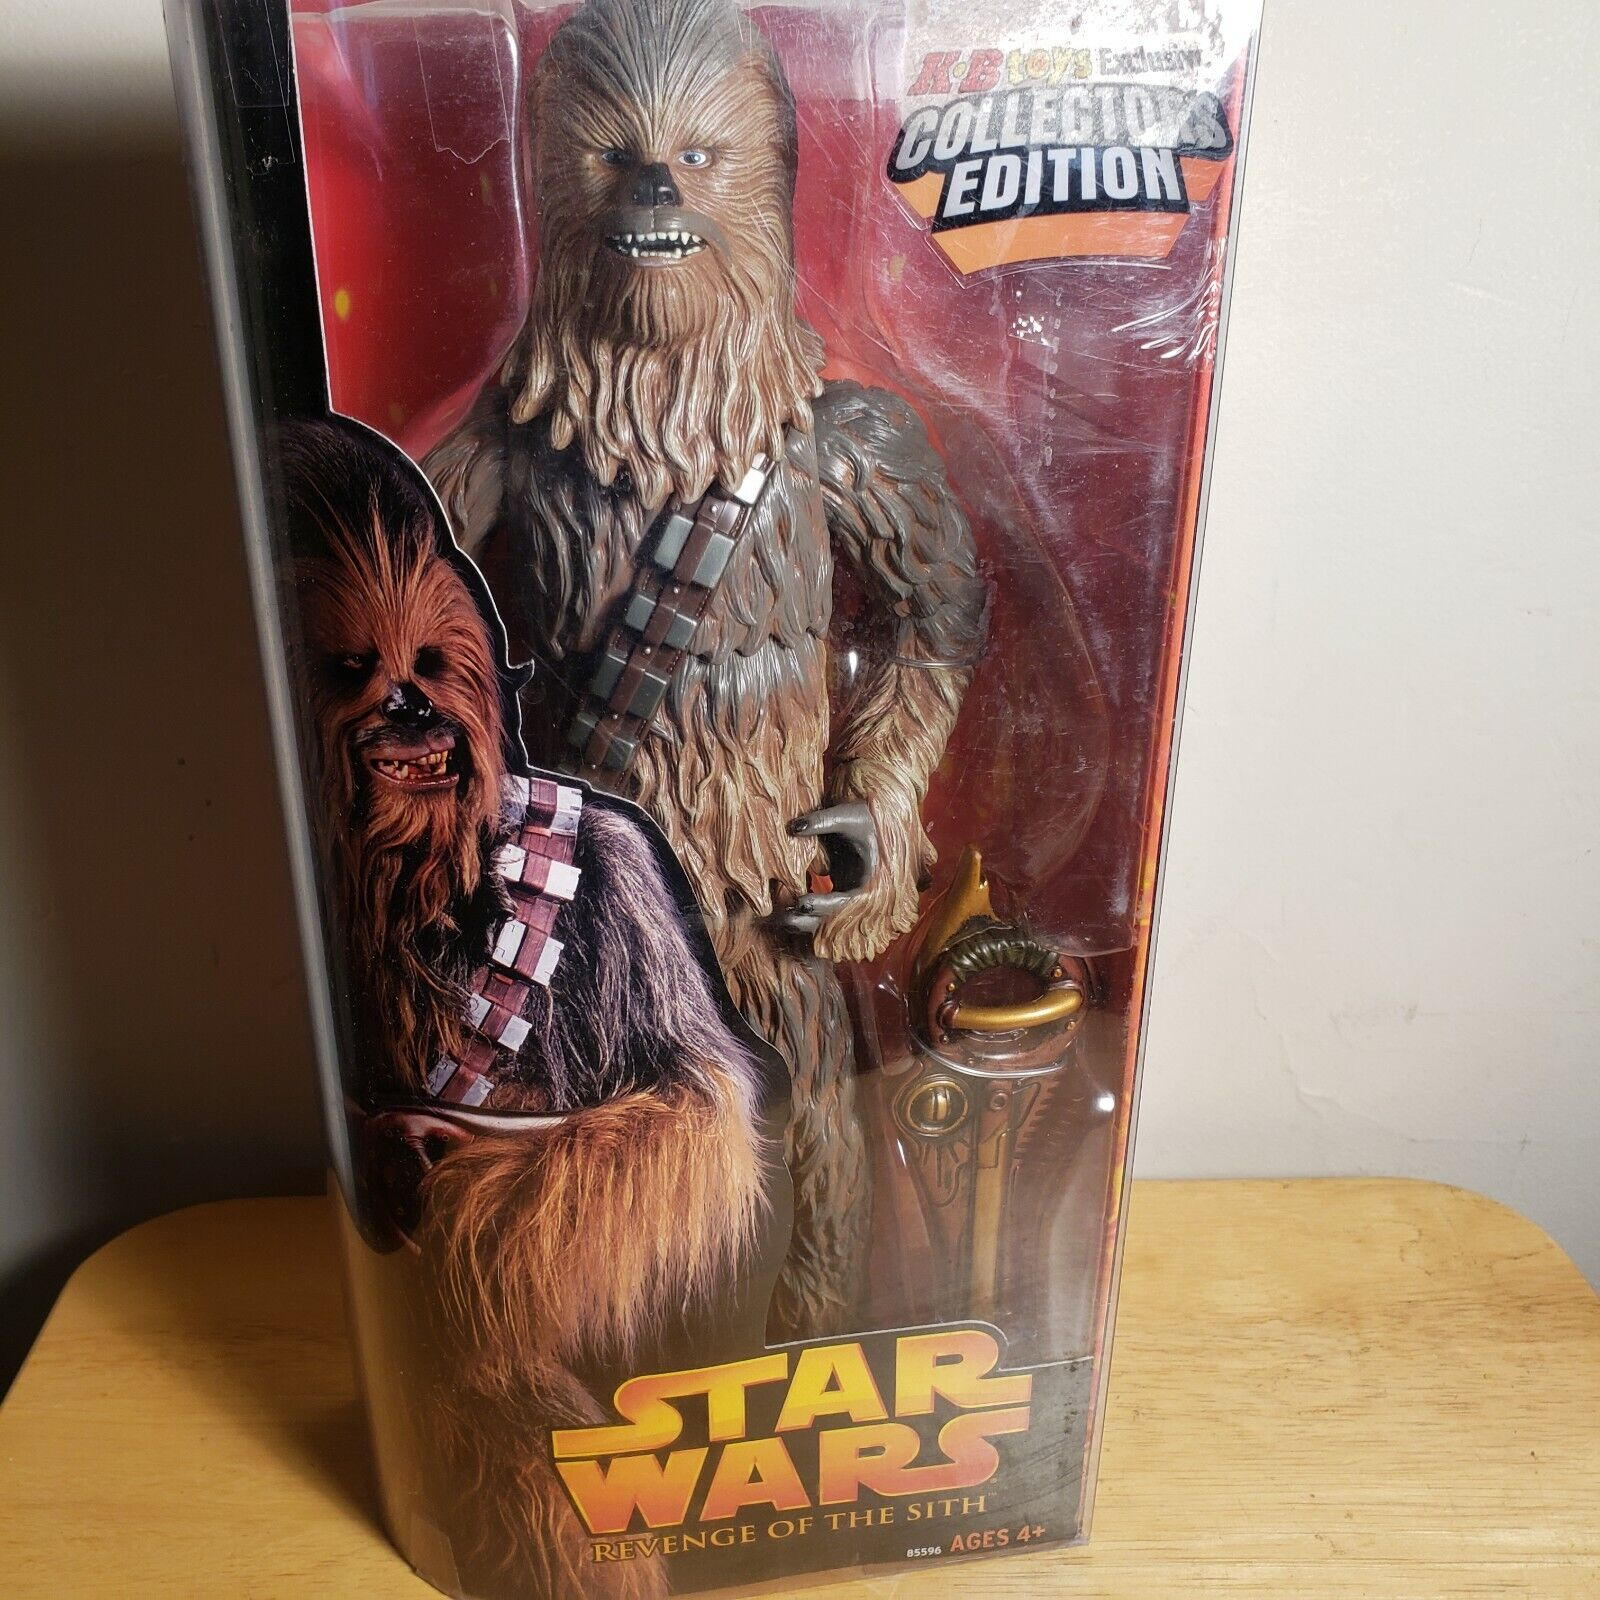 estrella guerras Revenge of the Sith 12 Exclusive Collectors edizione Chewbacca